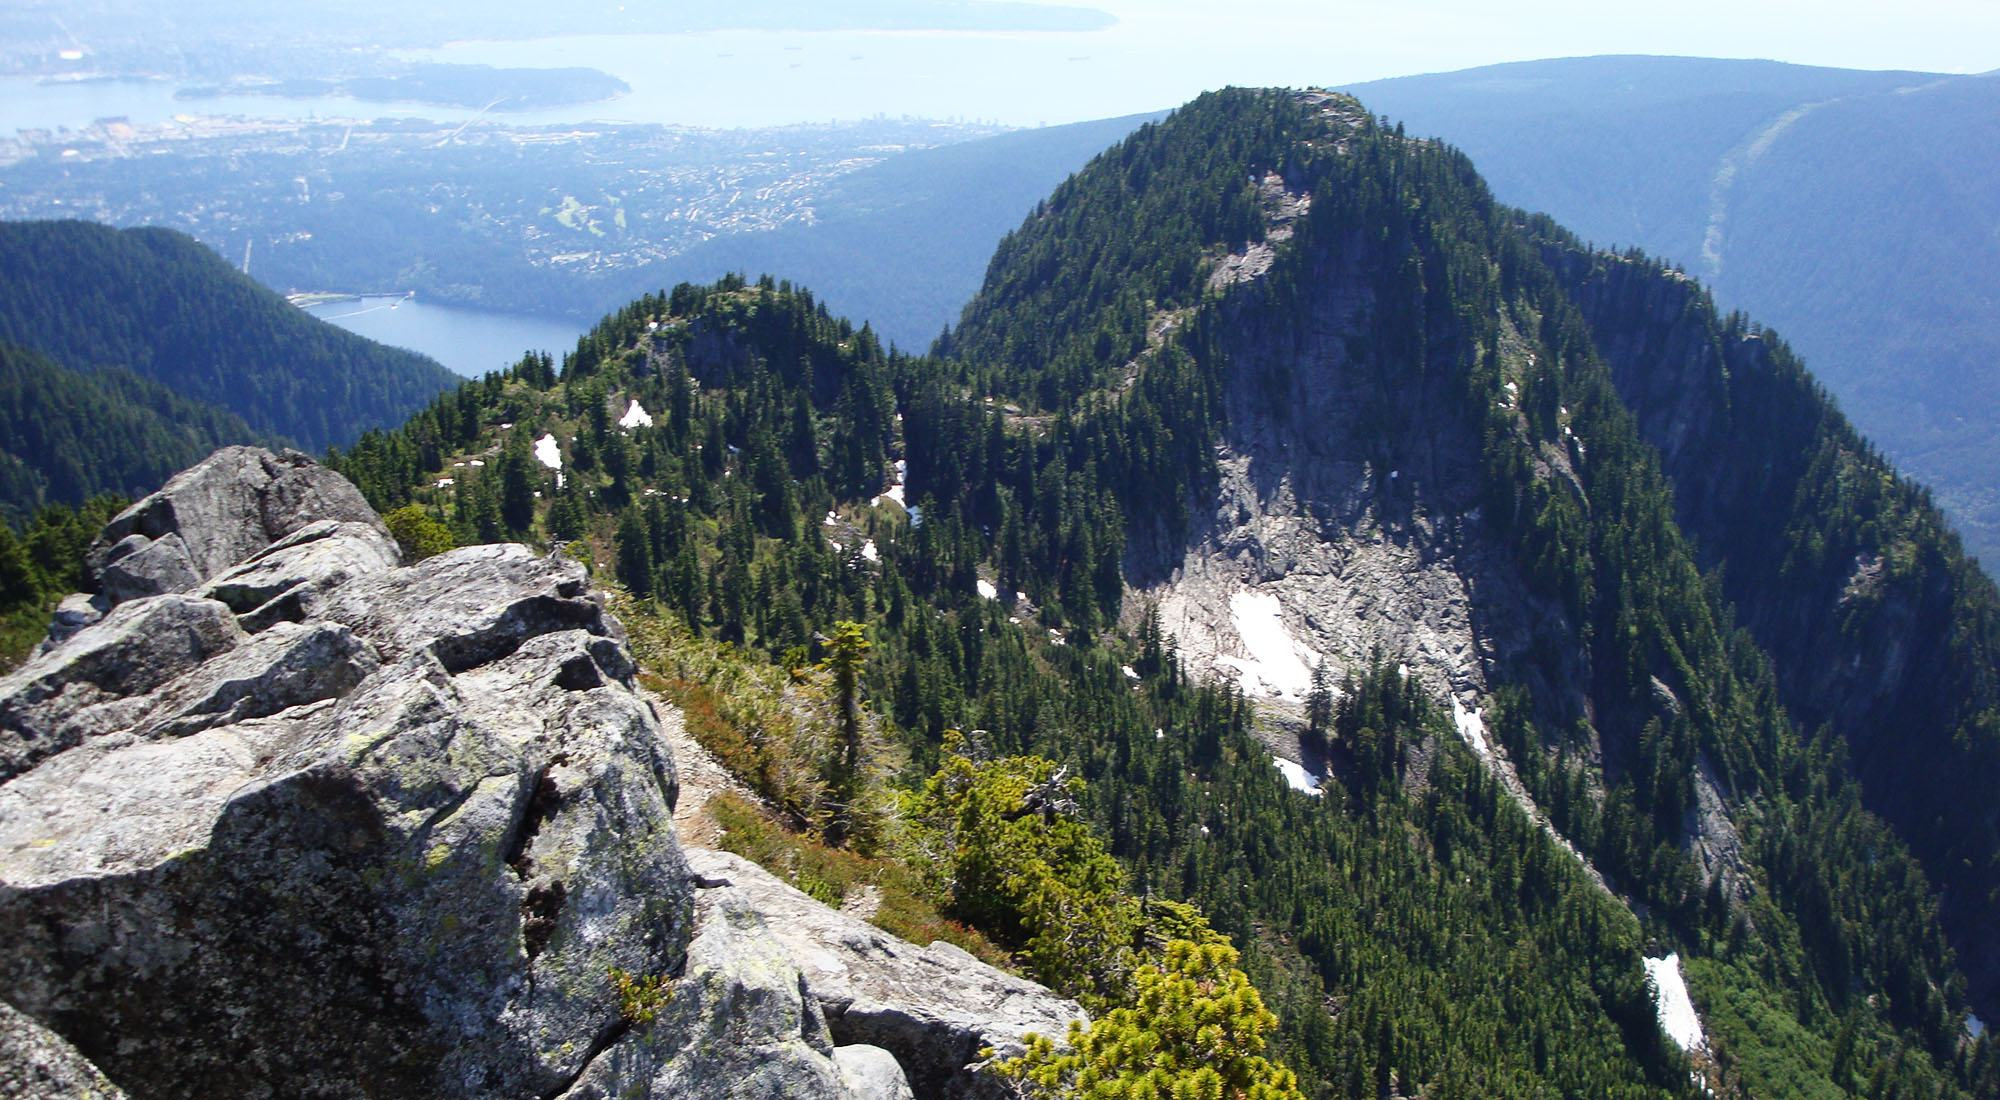 2 lost hikers rescued off Crown Mountain 'not at all prepared'